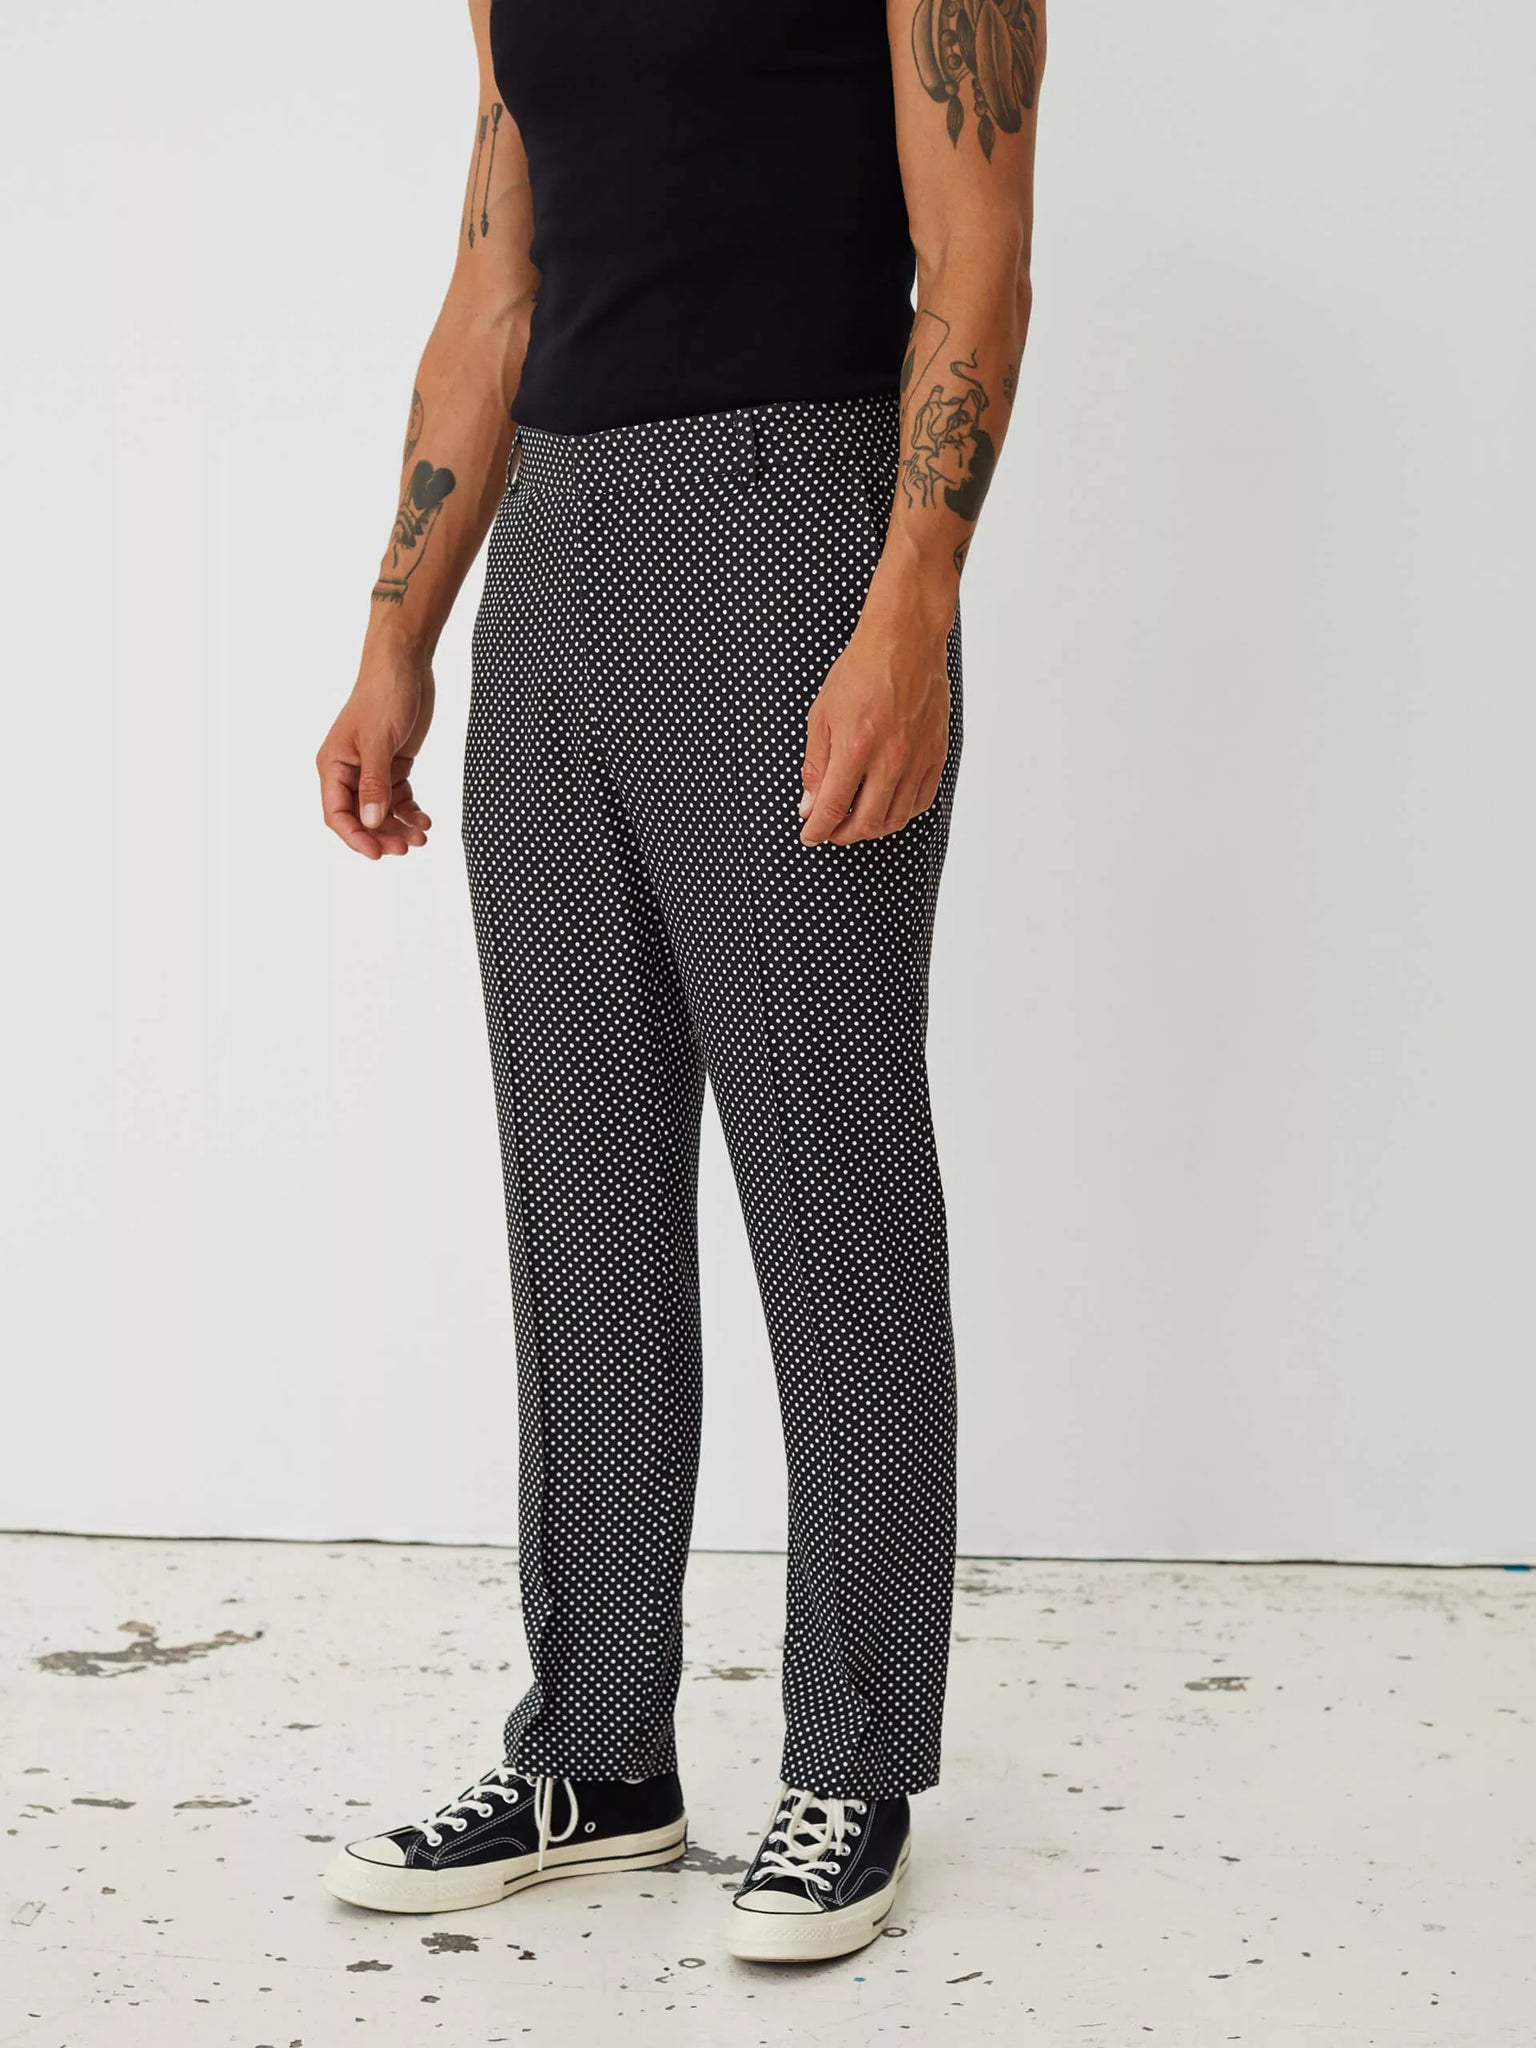 Blade trousers black with white dots